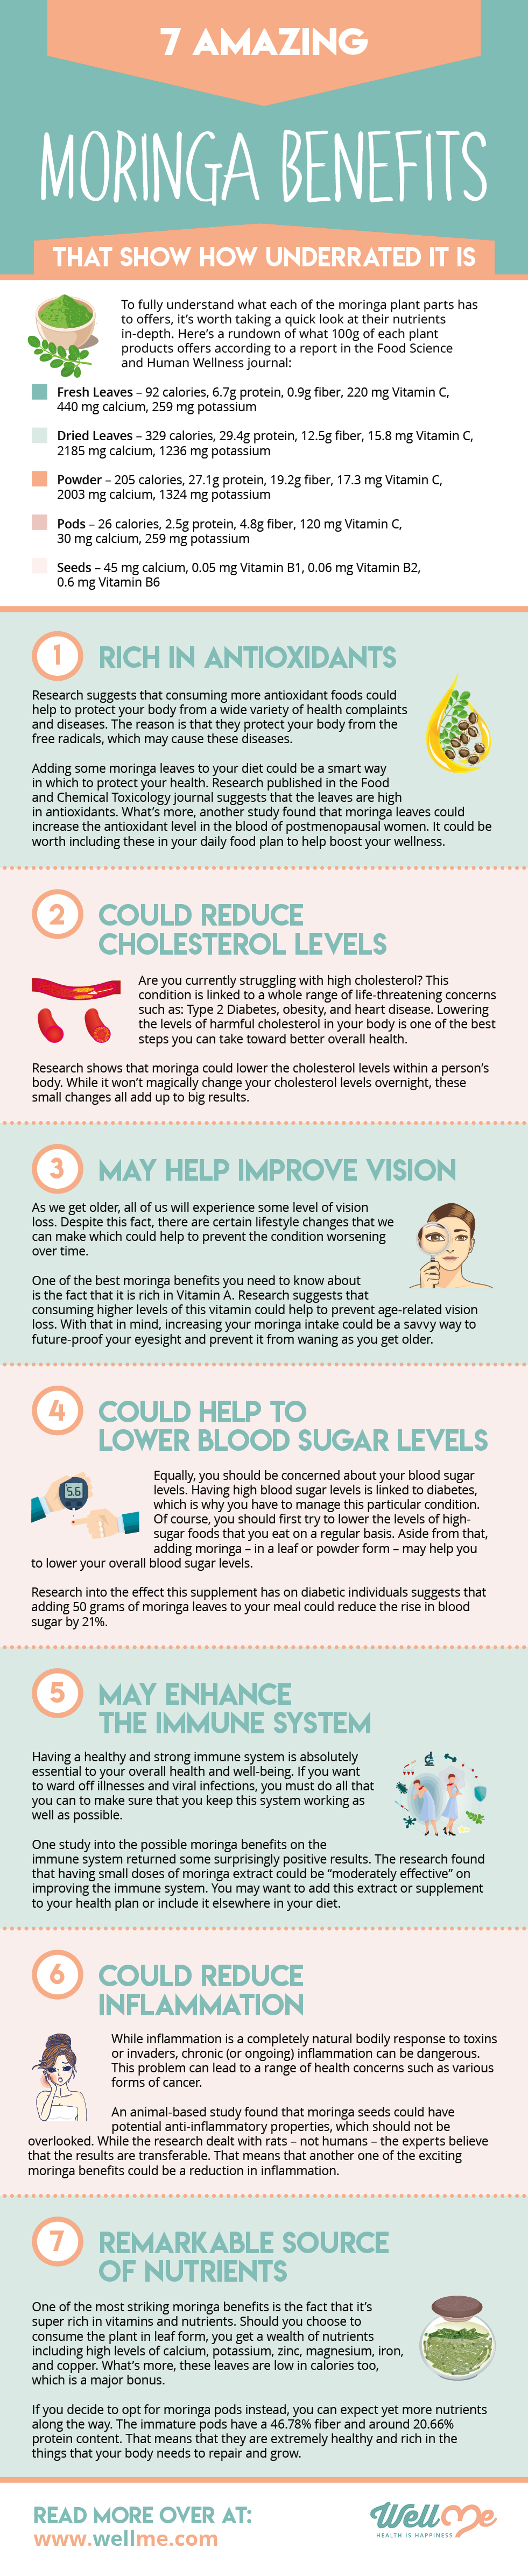 7 Amazing Moringa Benefits That Show How Underrated It Is inforgraphic